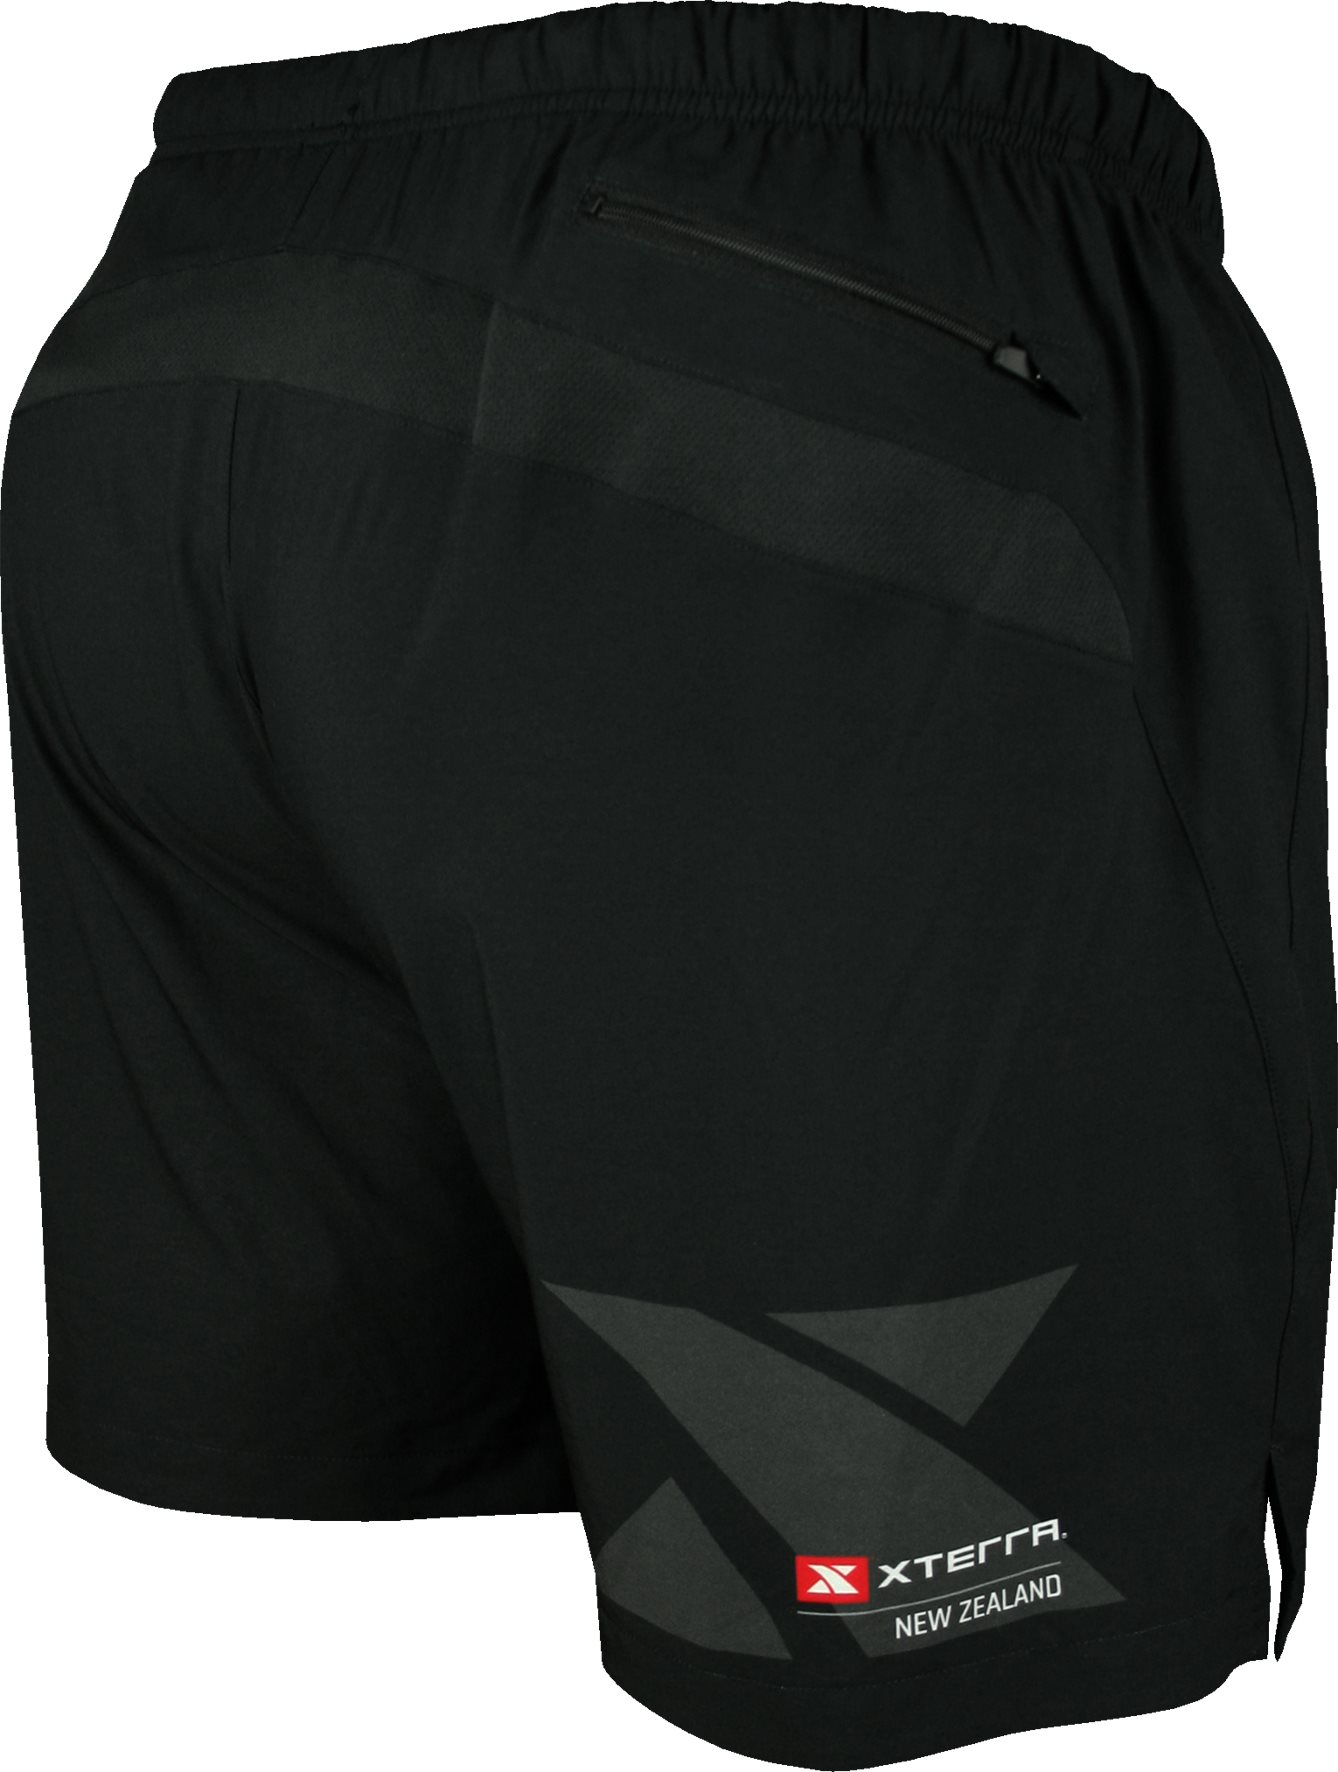 XTERRA Running Shorts